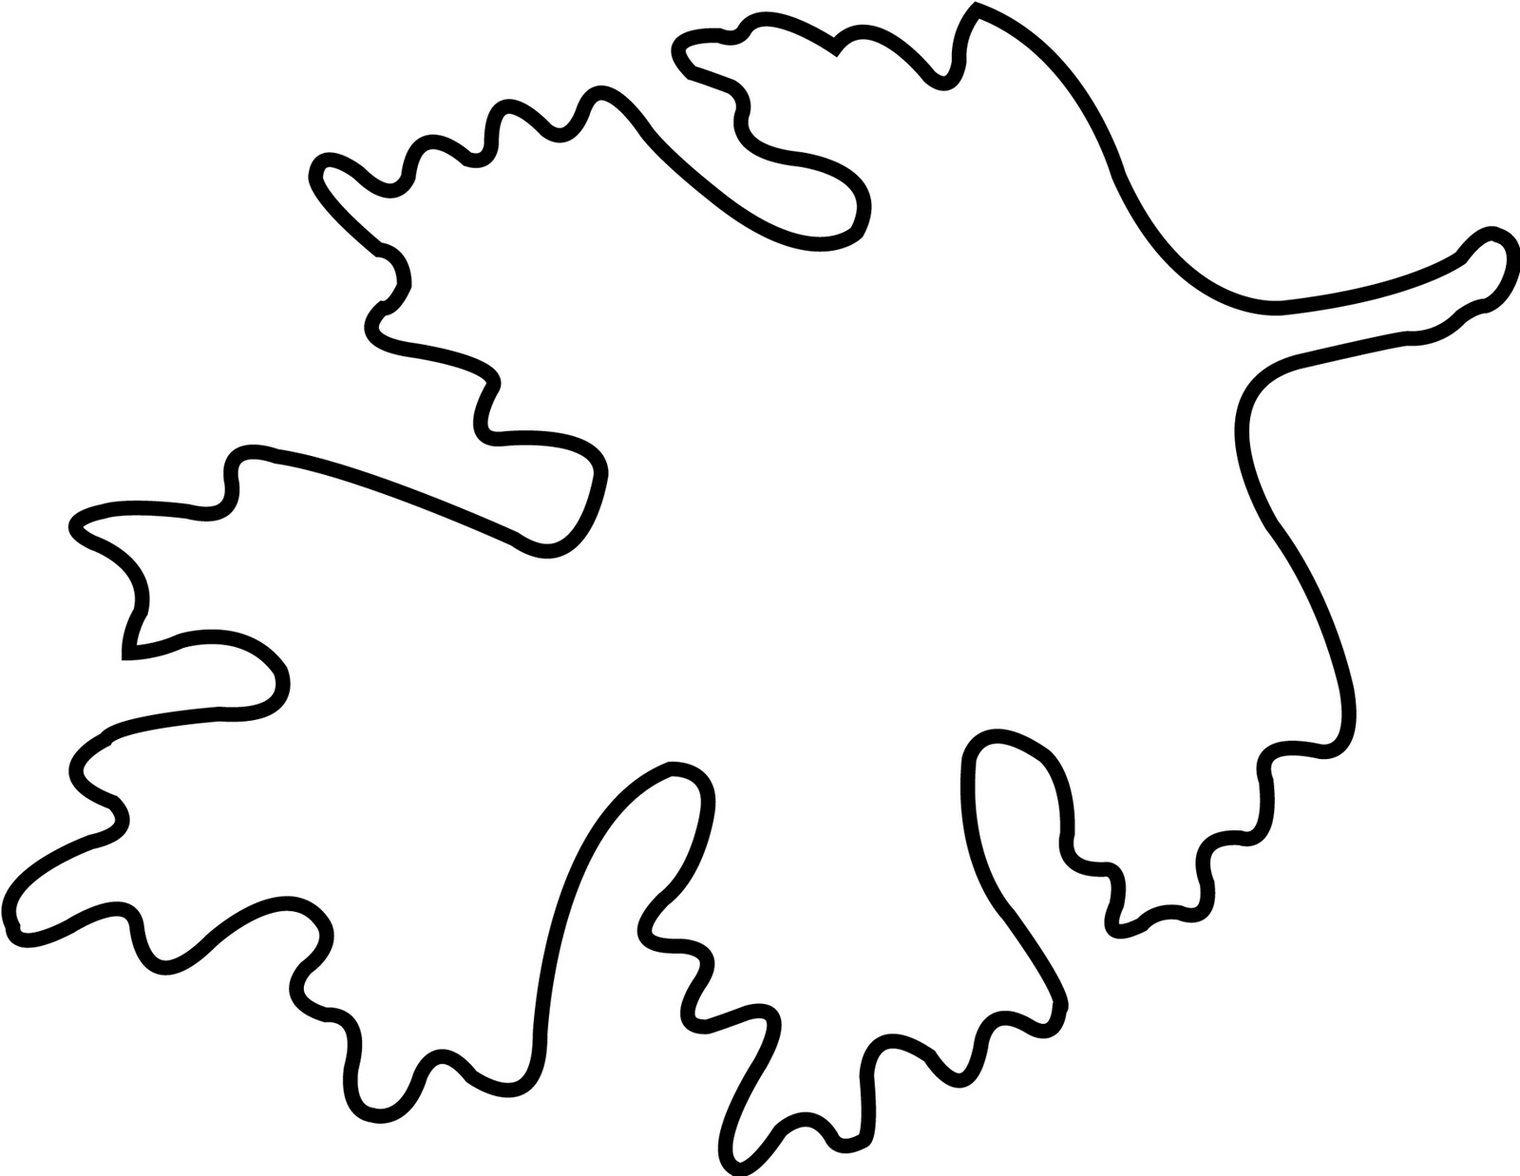 1520x1176 Leaf Outline Tree With Leaves Clipart 2 Wikiclipart